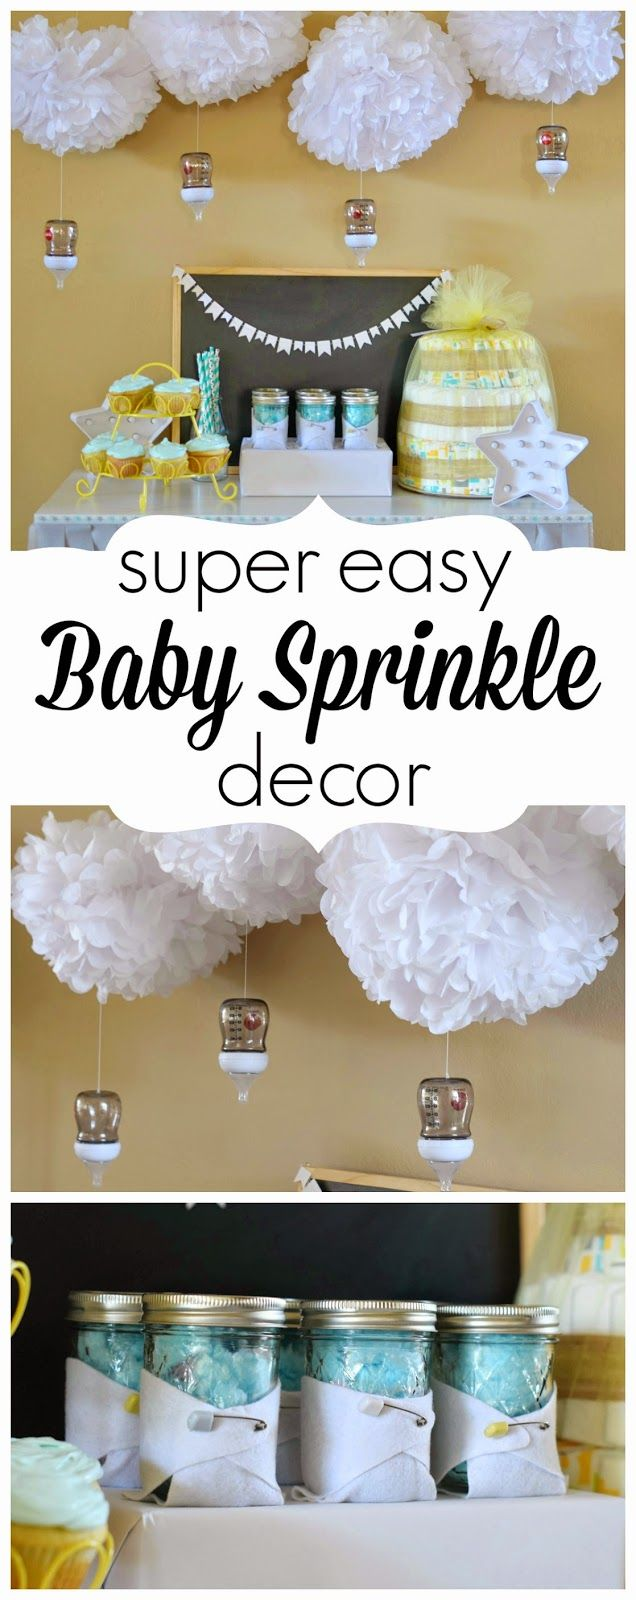 Baby Sprinkle!  How cute are these baby bottle raindrops?  Lots of easy baby shower party ideas